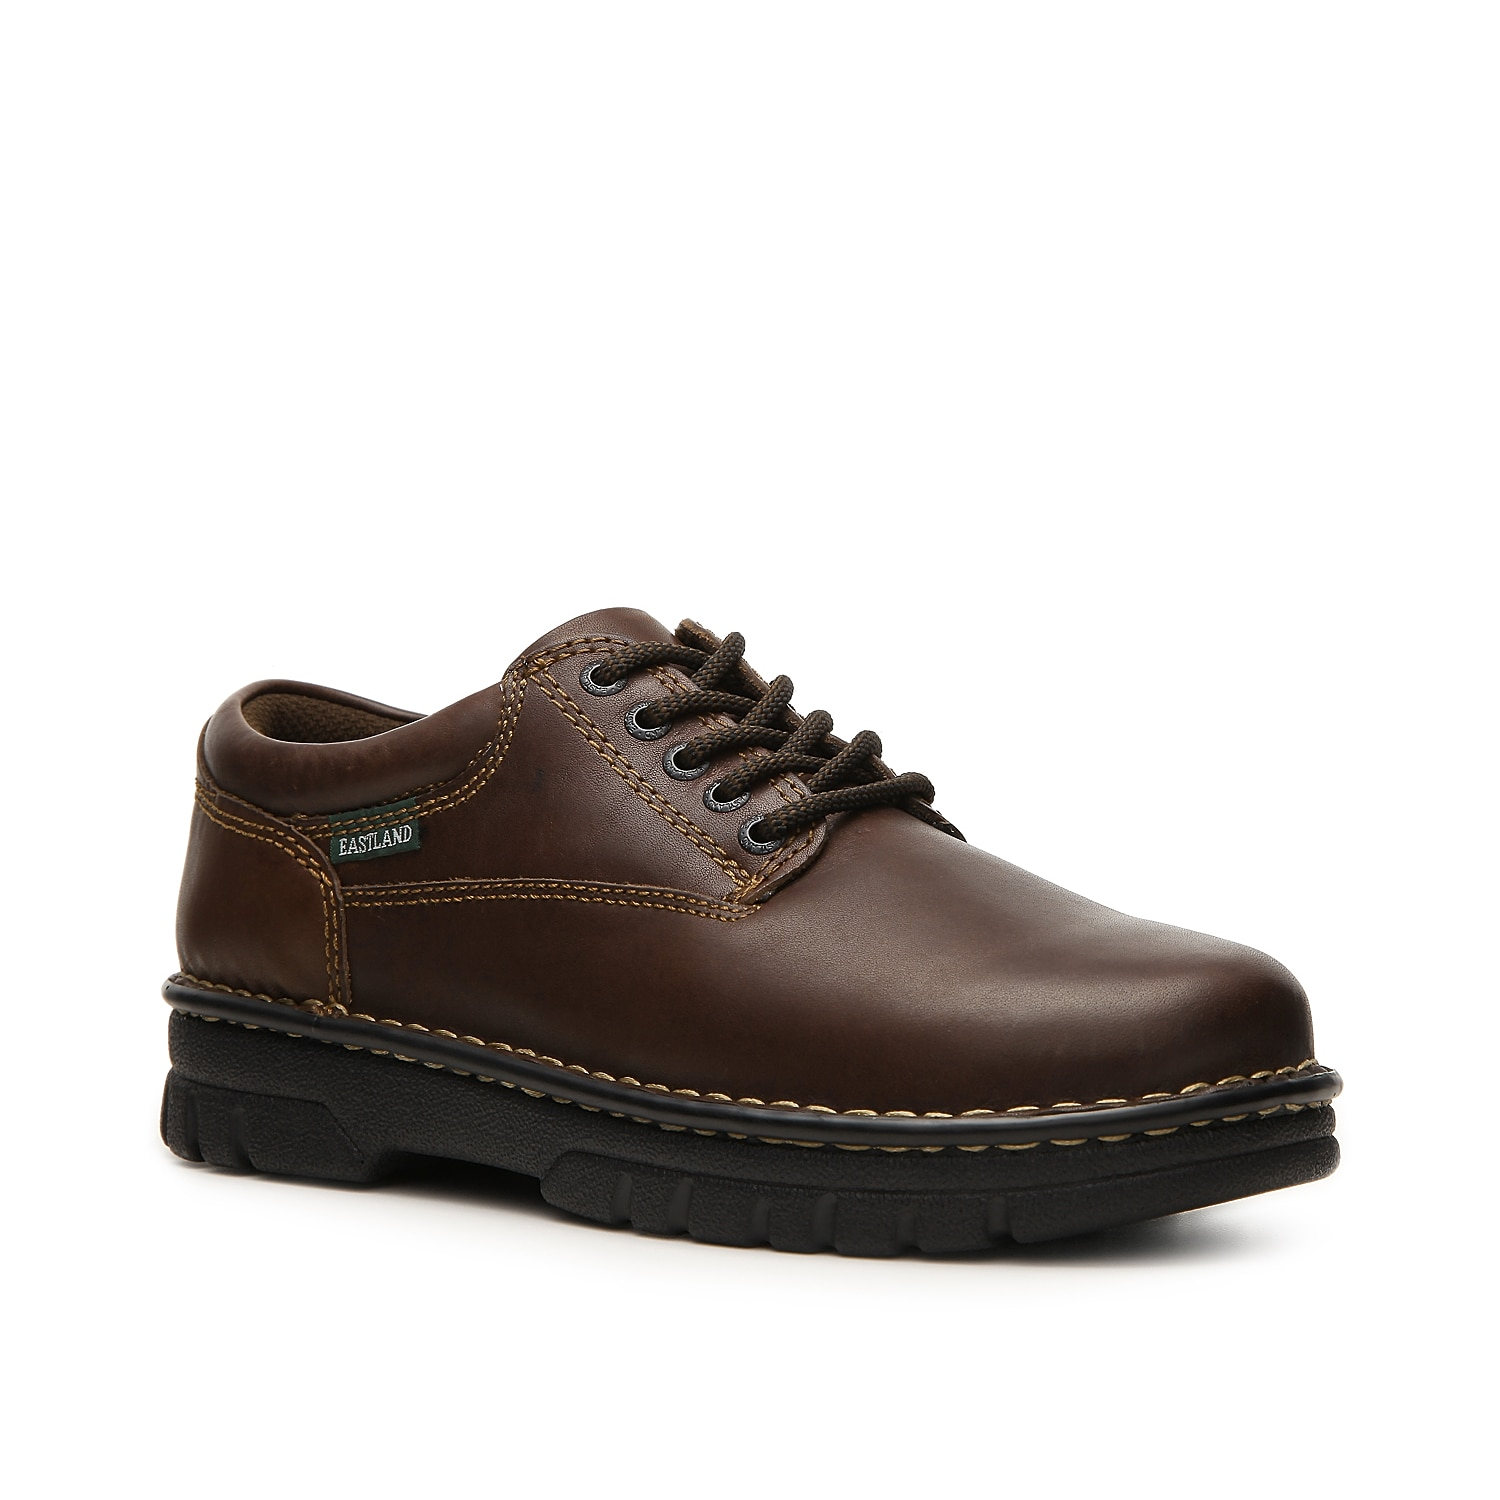 The Plainview oxford from Eastland features timeless design and all day comfort. Lace up this leather shoe which is versatile enough for casual or dress occasions.